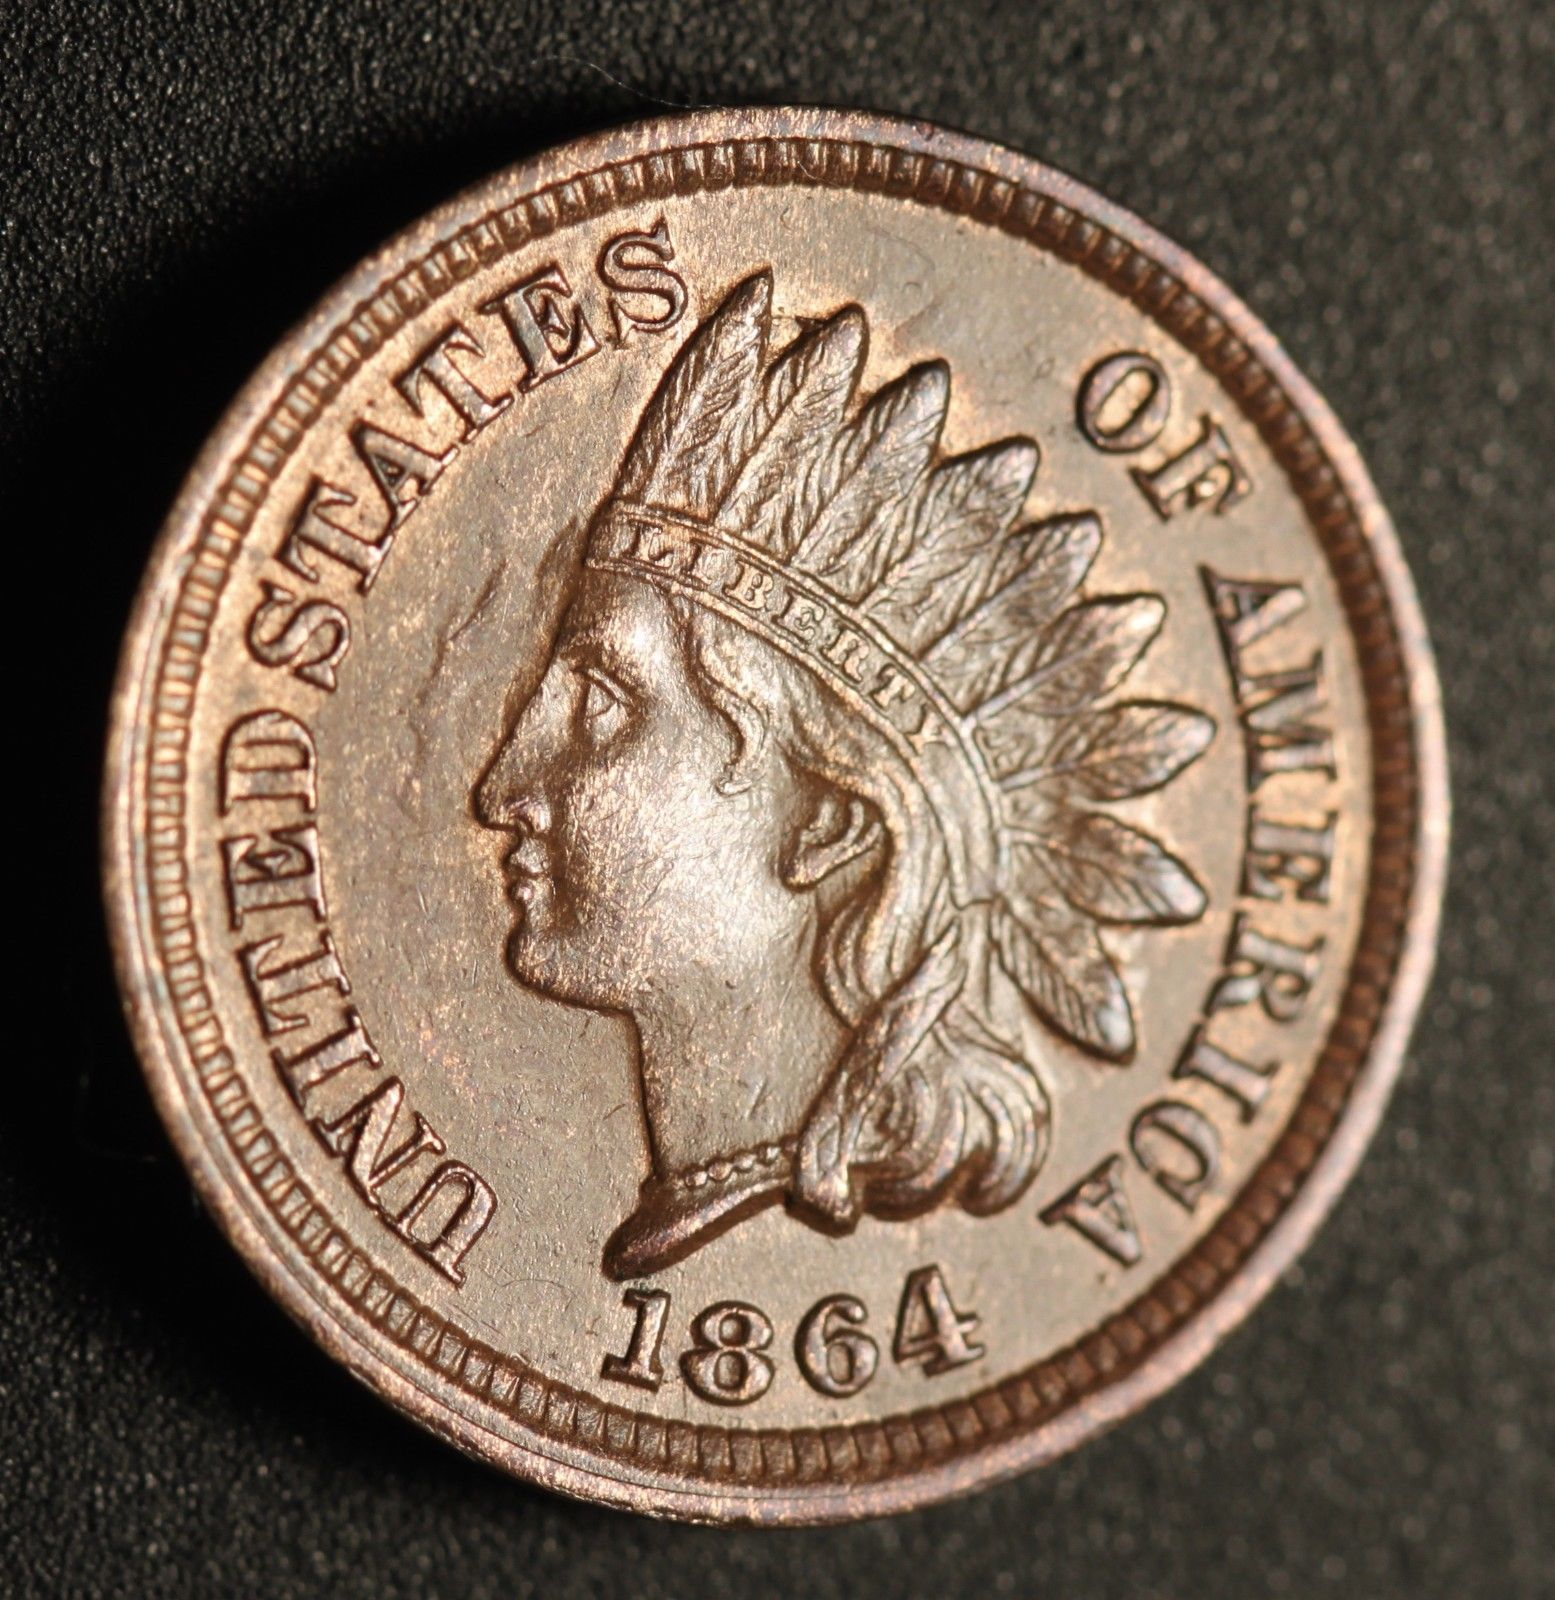 1864 No-L RPD-006 - Indian Head Penny - Photo by Ed Nathanson